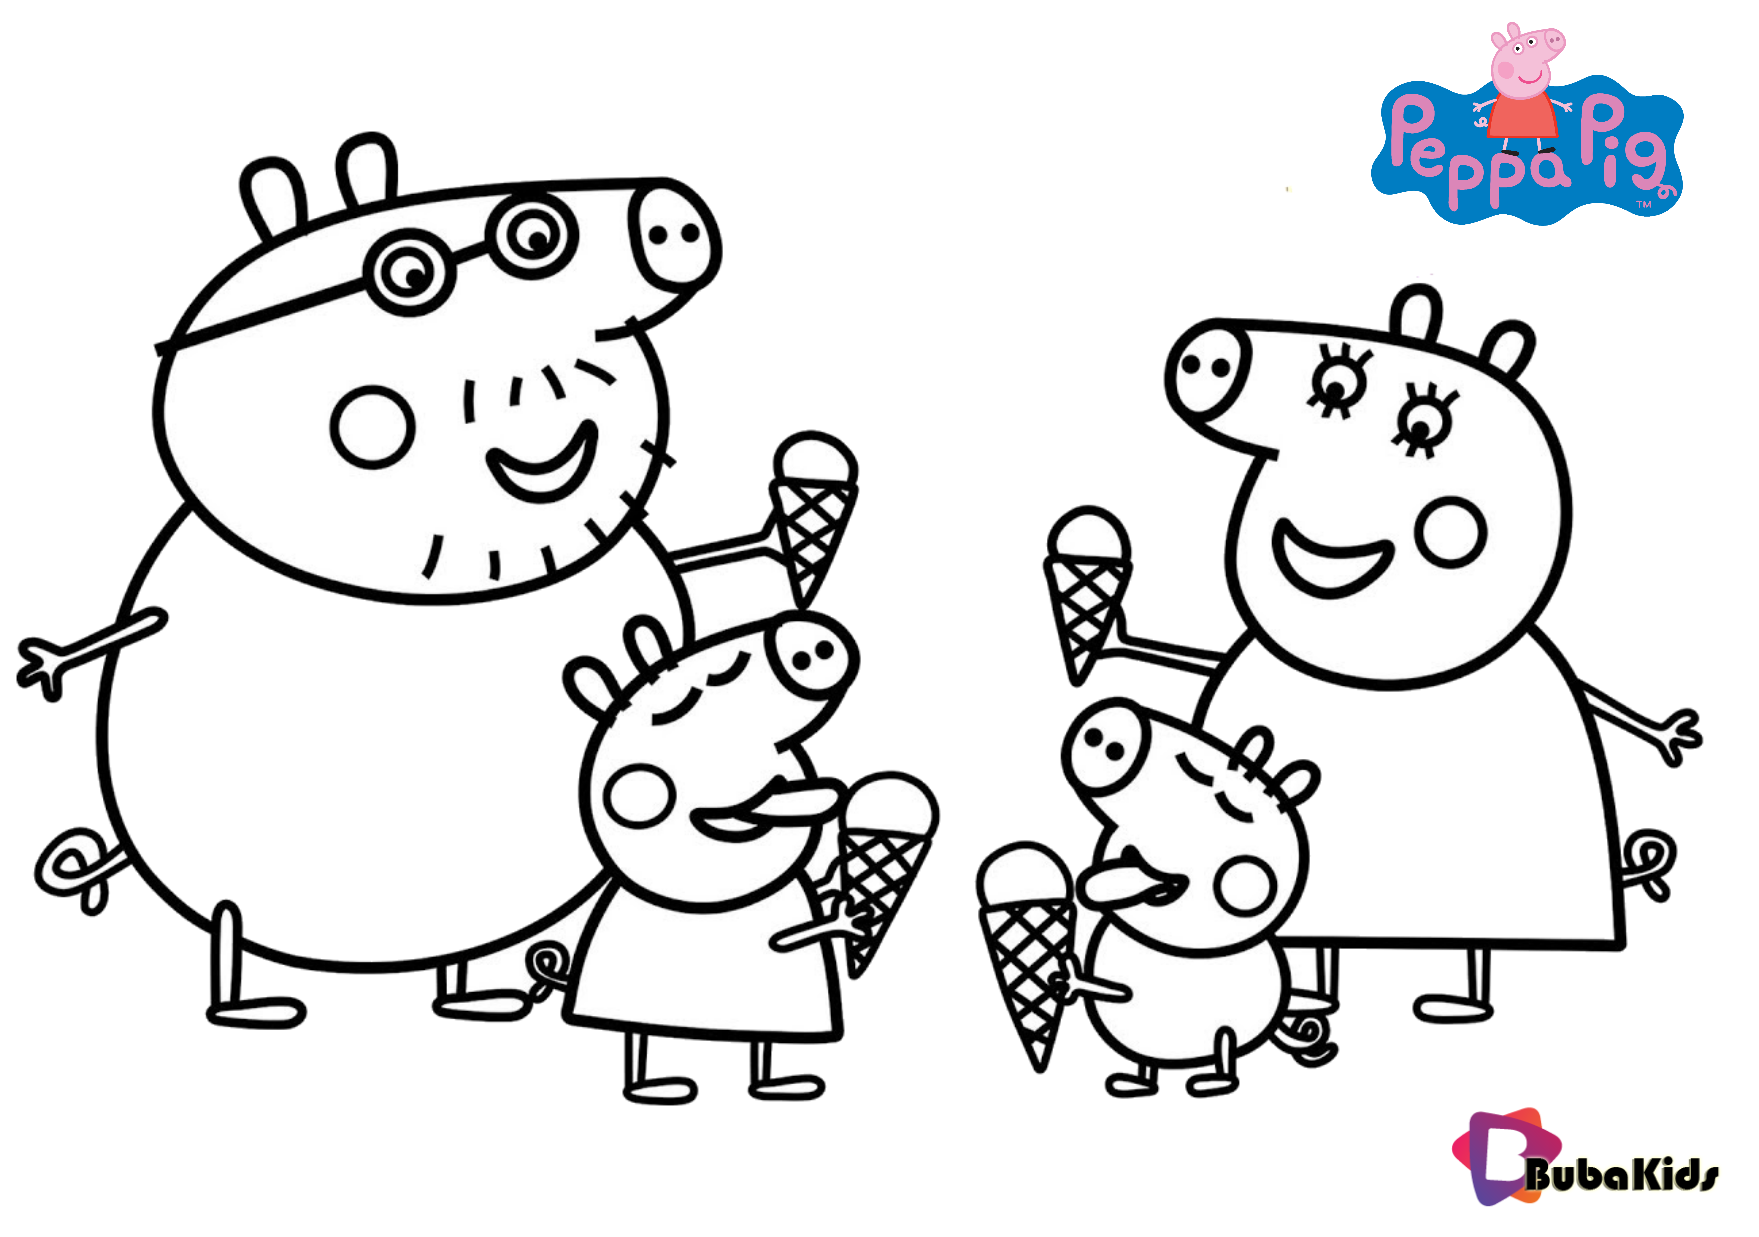 Peppa pig family and ice cream coloring pages Wallpaper